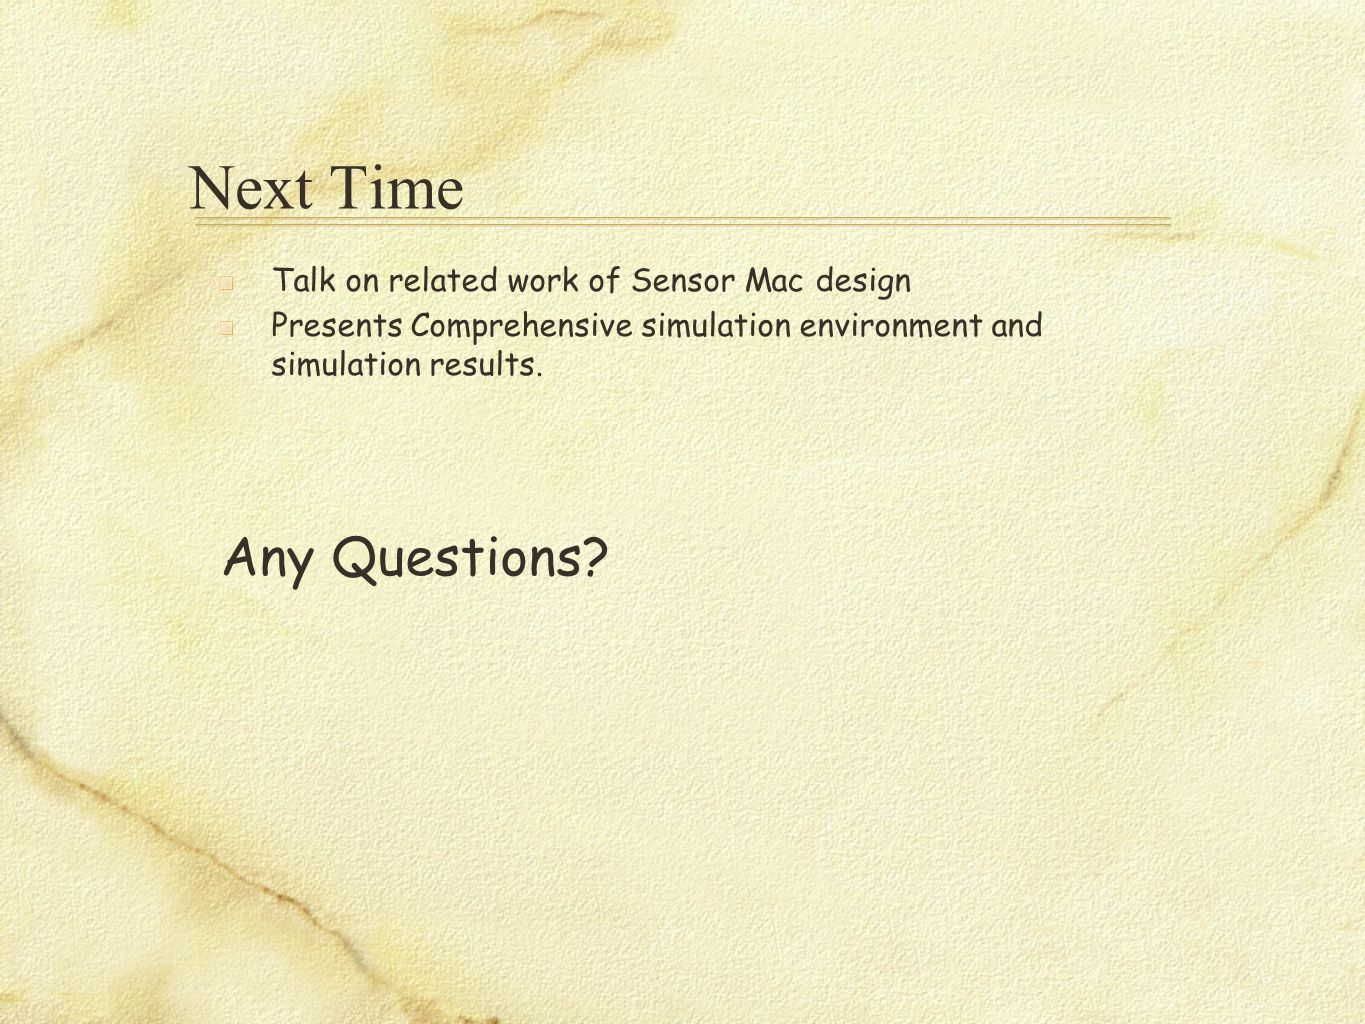 Next Time Talk on related work of Sensor Mac design Presents Comprehensive simulation environment and simulation results.